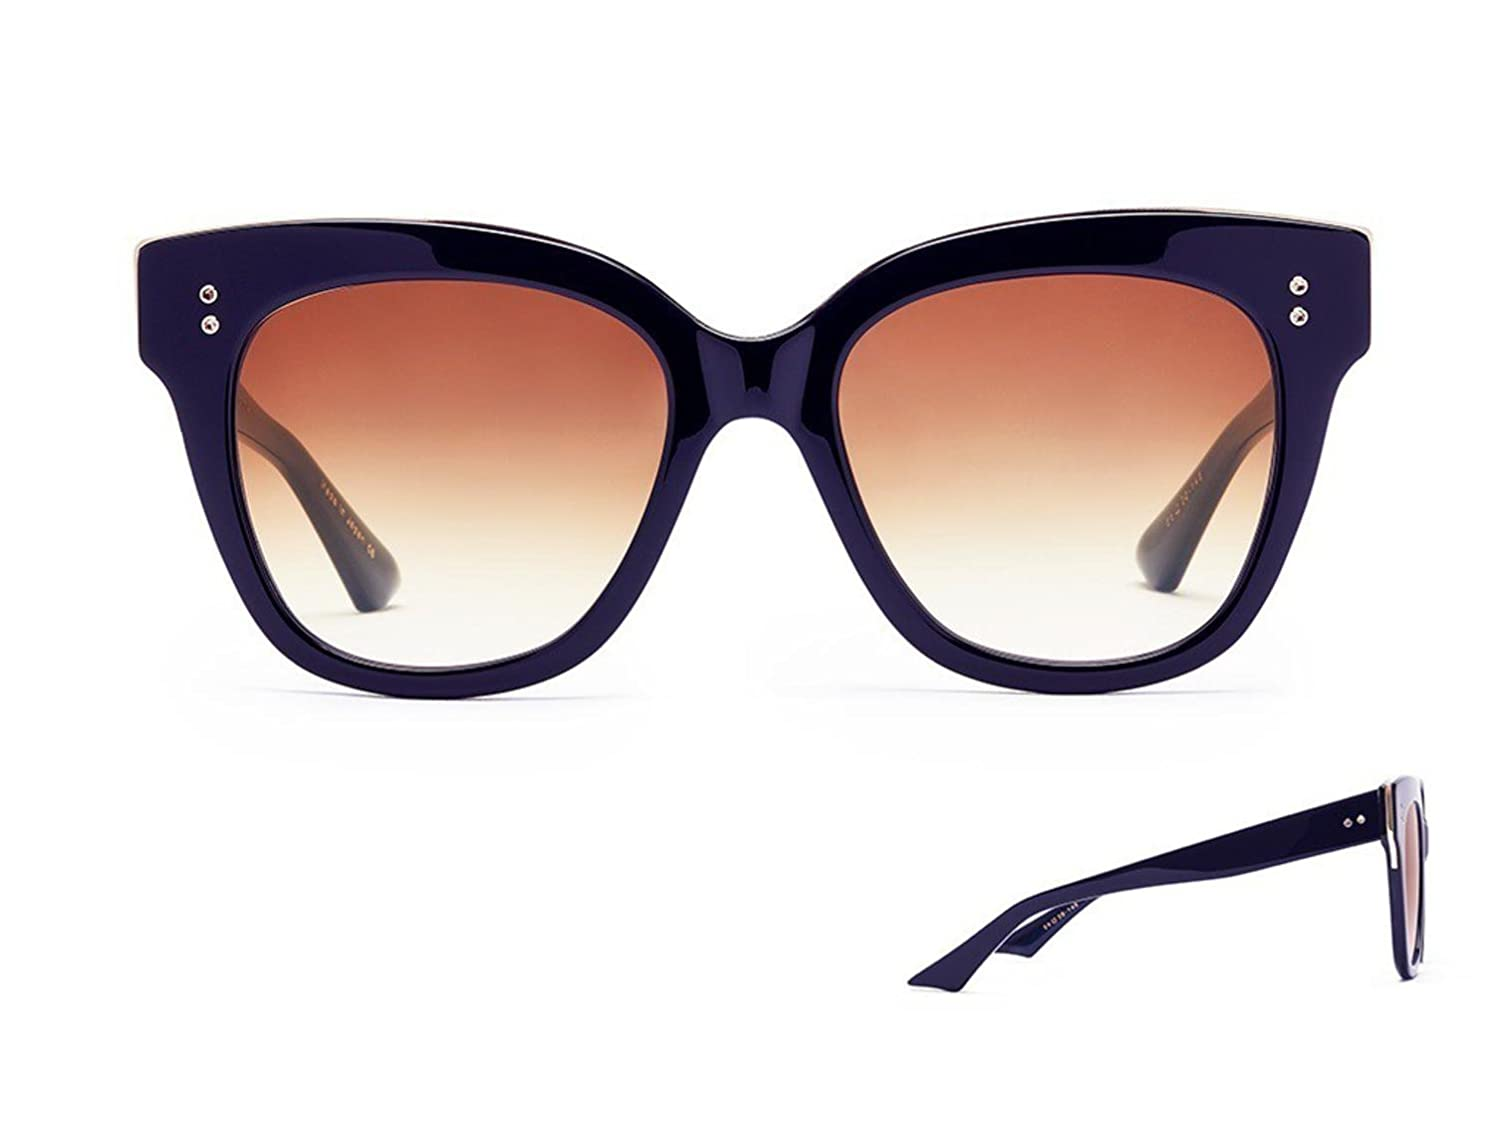 6624d077dd5 Sunglasses Dita DAY TRIPPER 22031 D-NVY-GLD NavyNavy Swirl-Gold w Dark  Brown to  Amazon.co.uk  Clothing